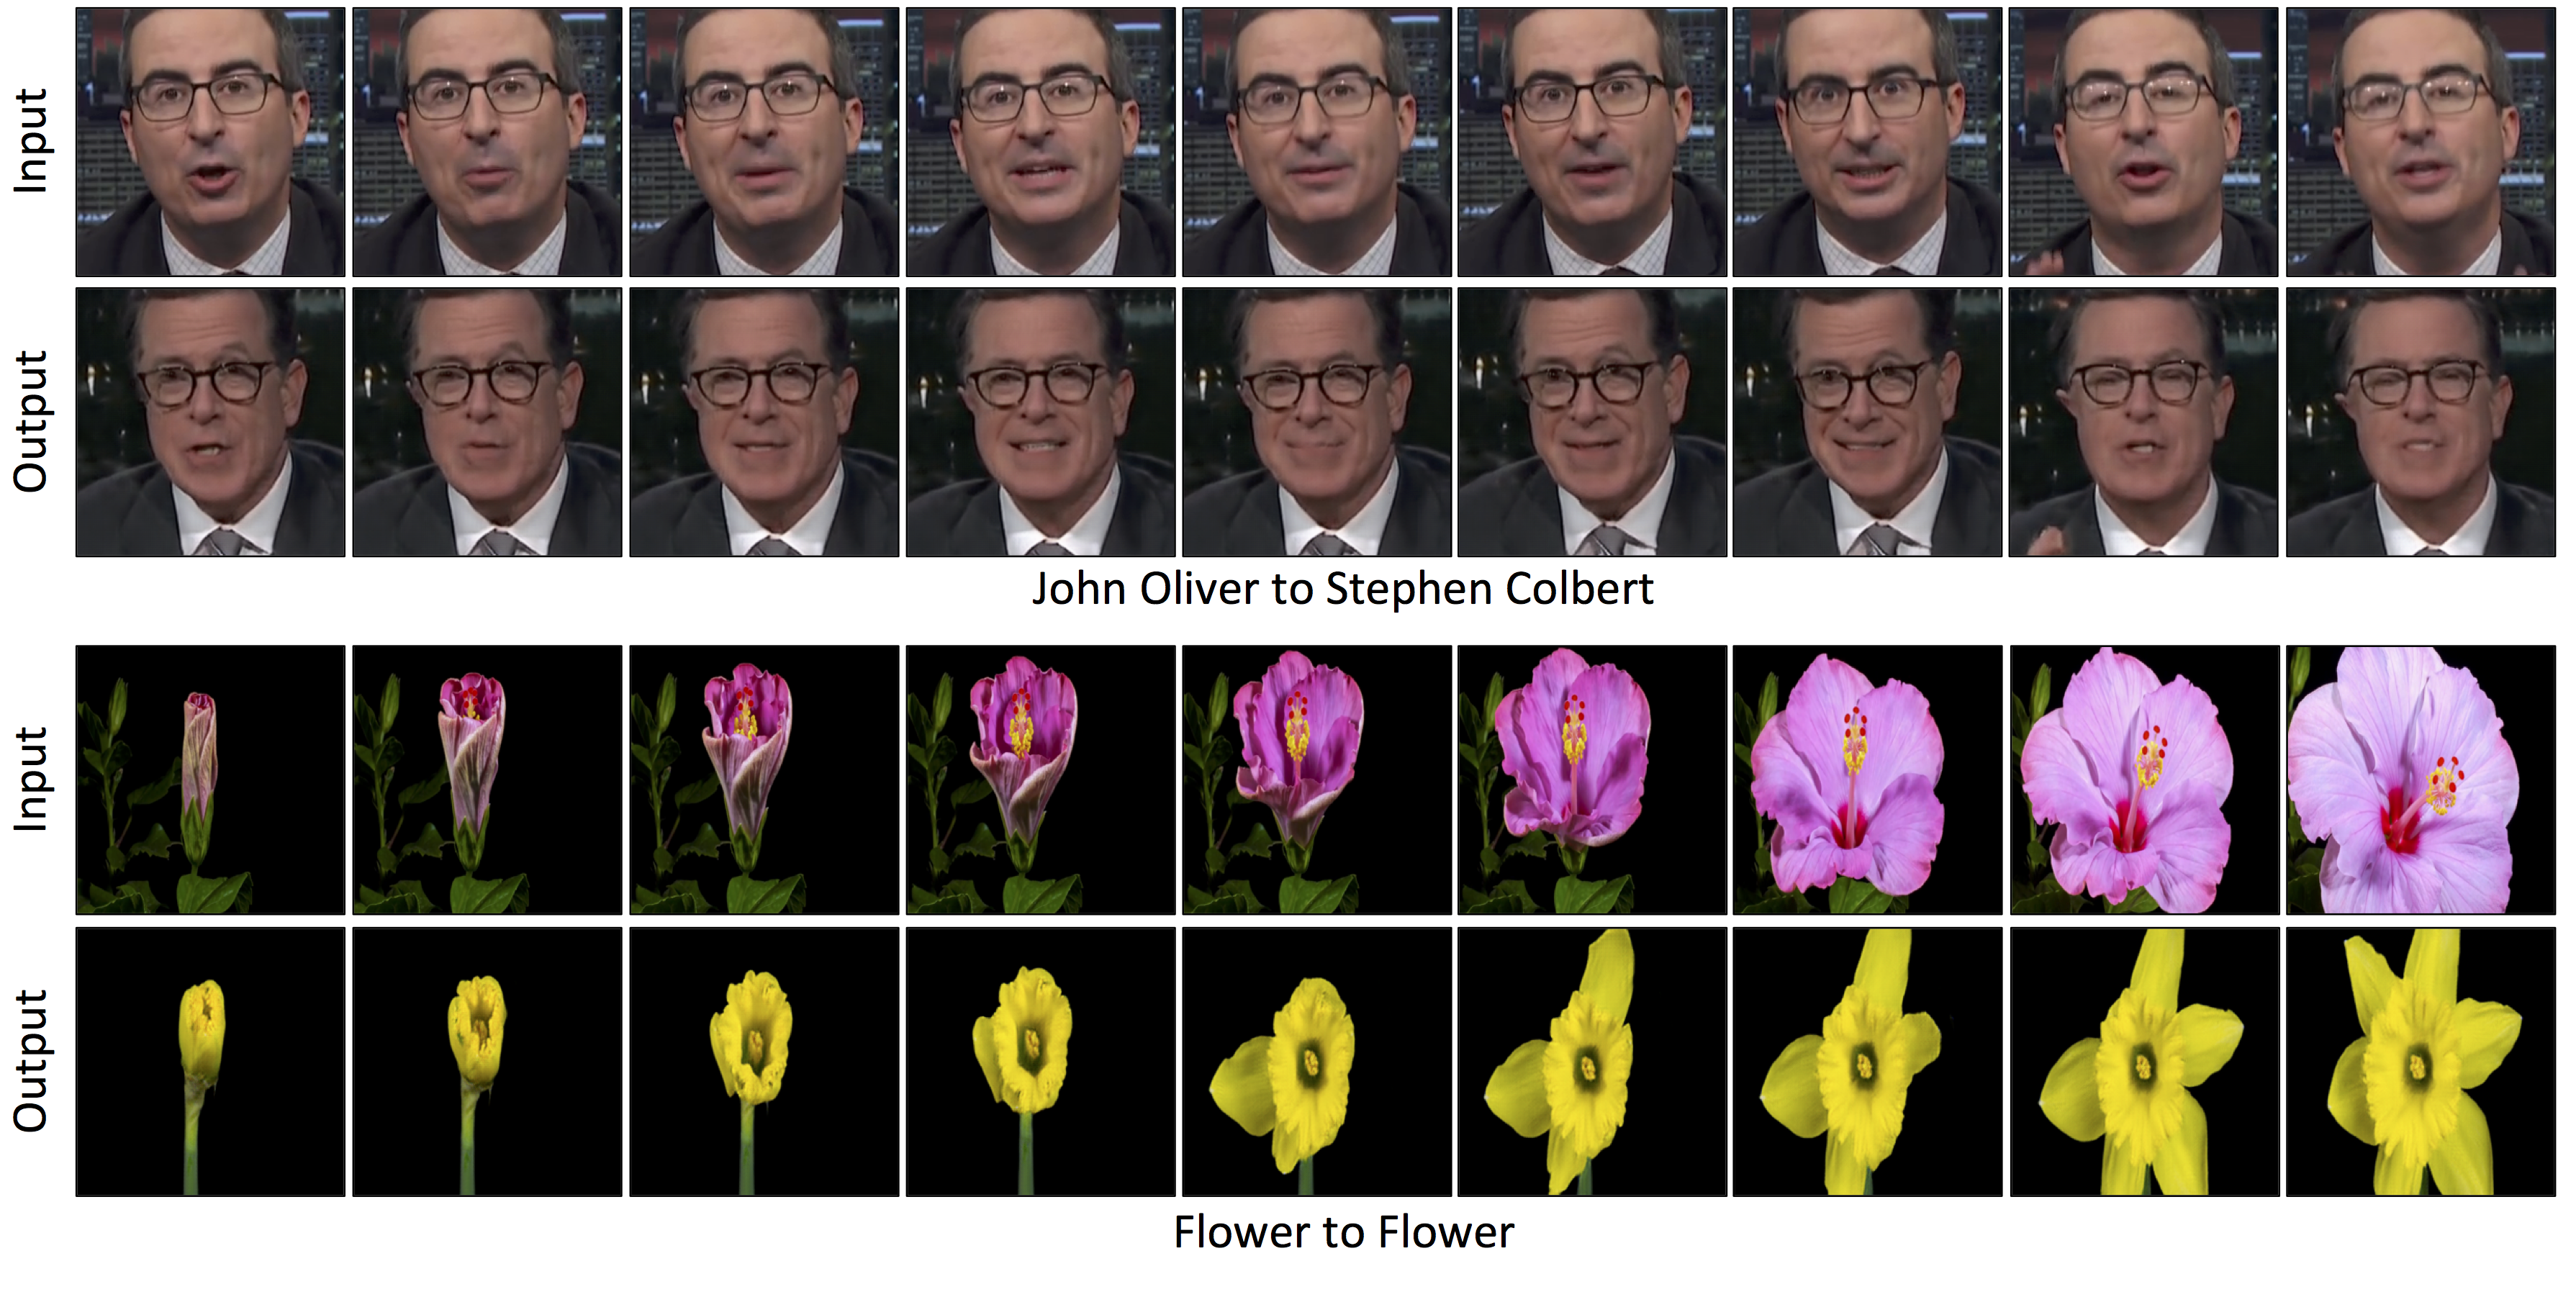 Researchers Come Out With Yet Another Unnerving, New Deepfake Method